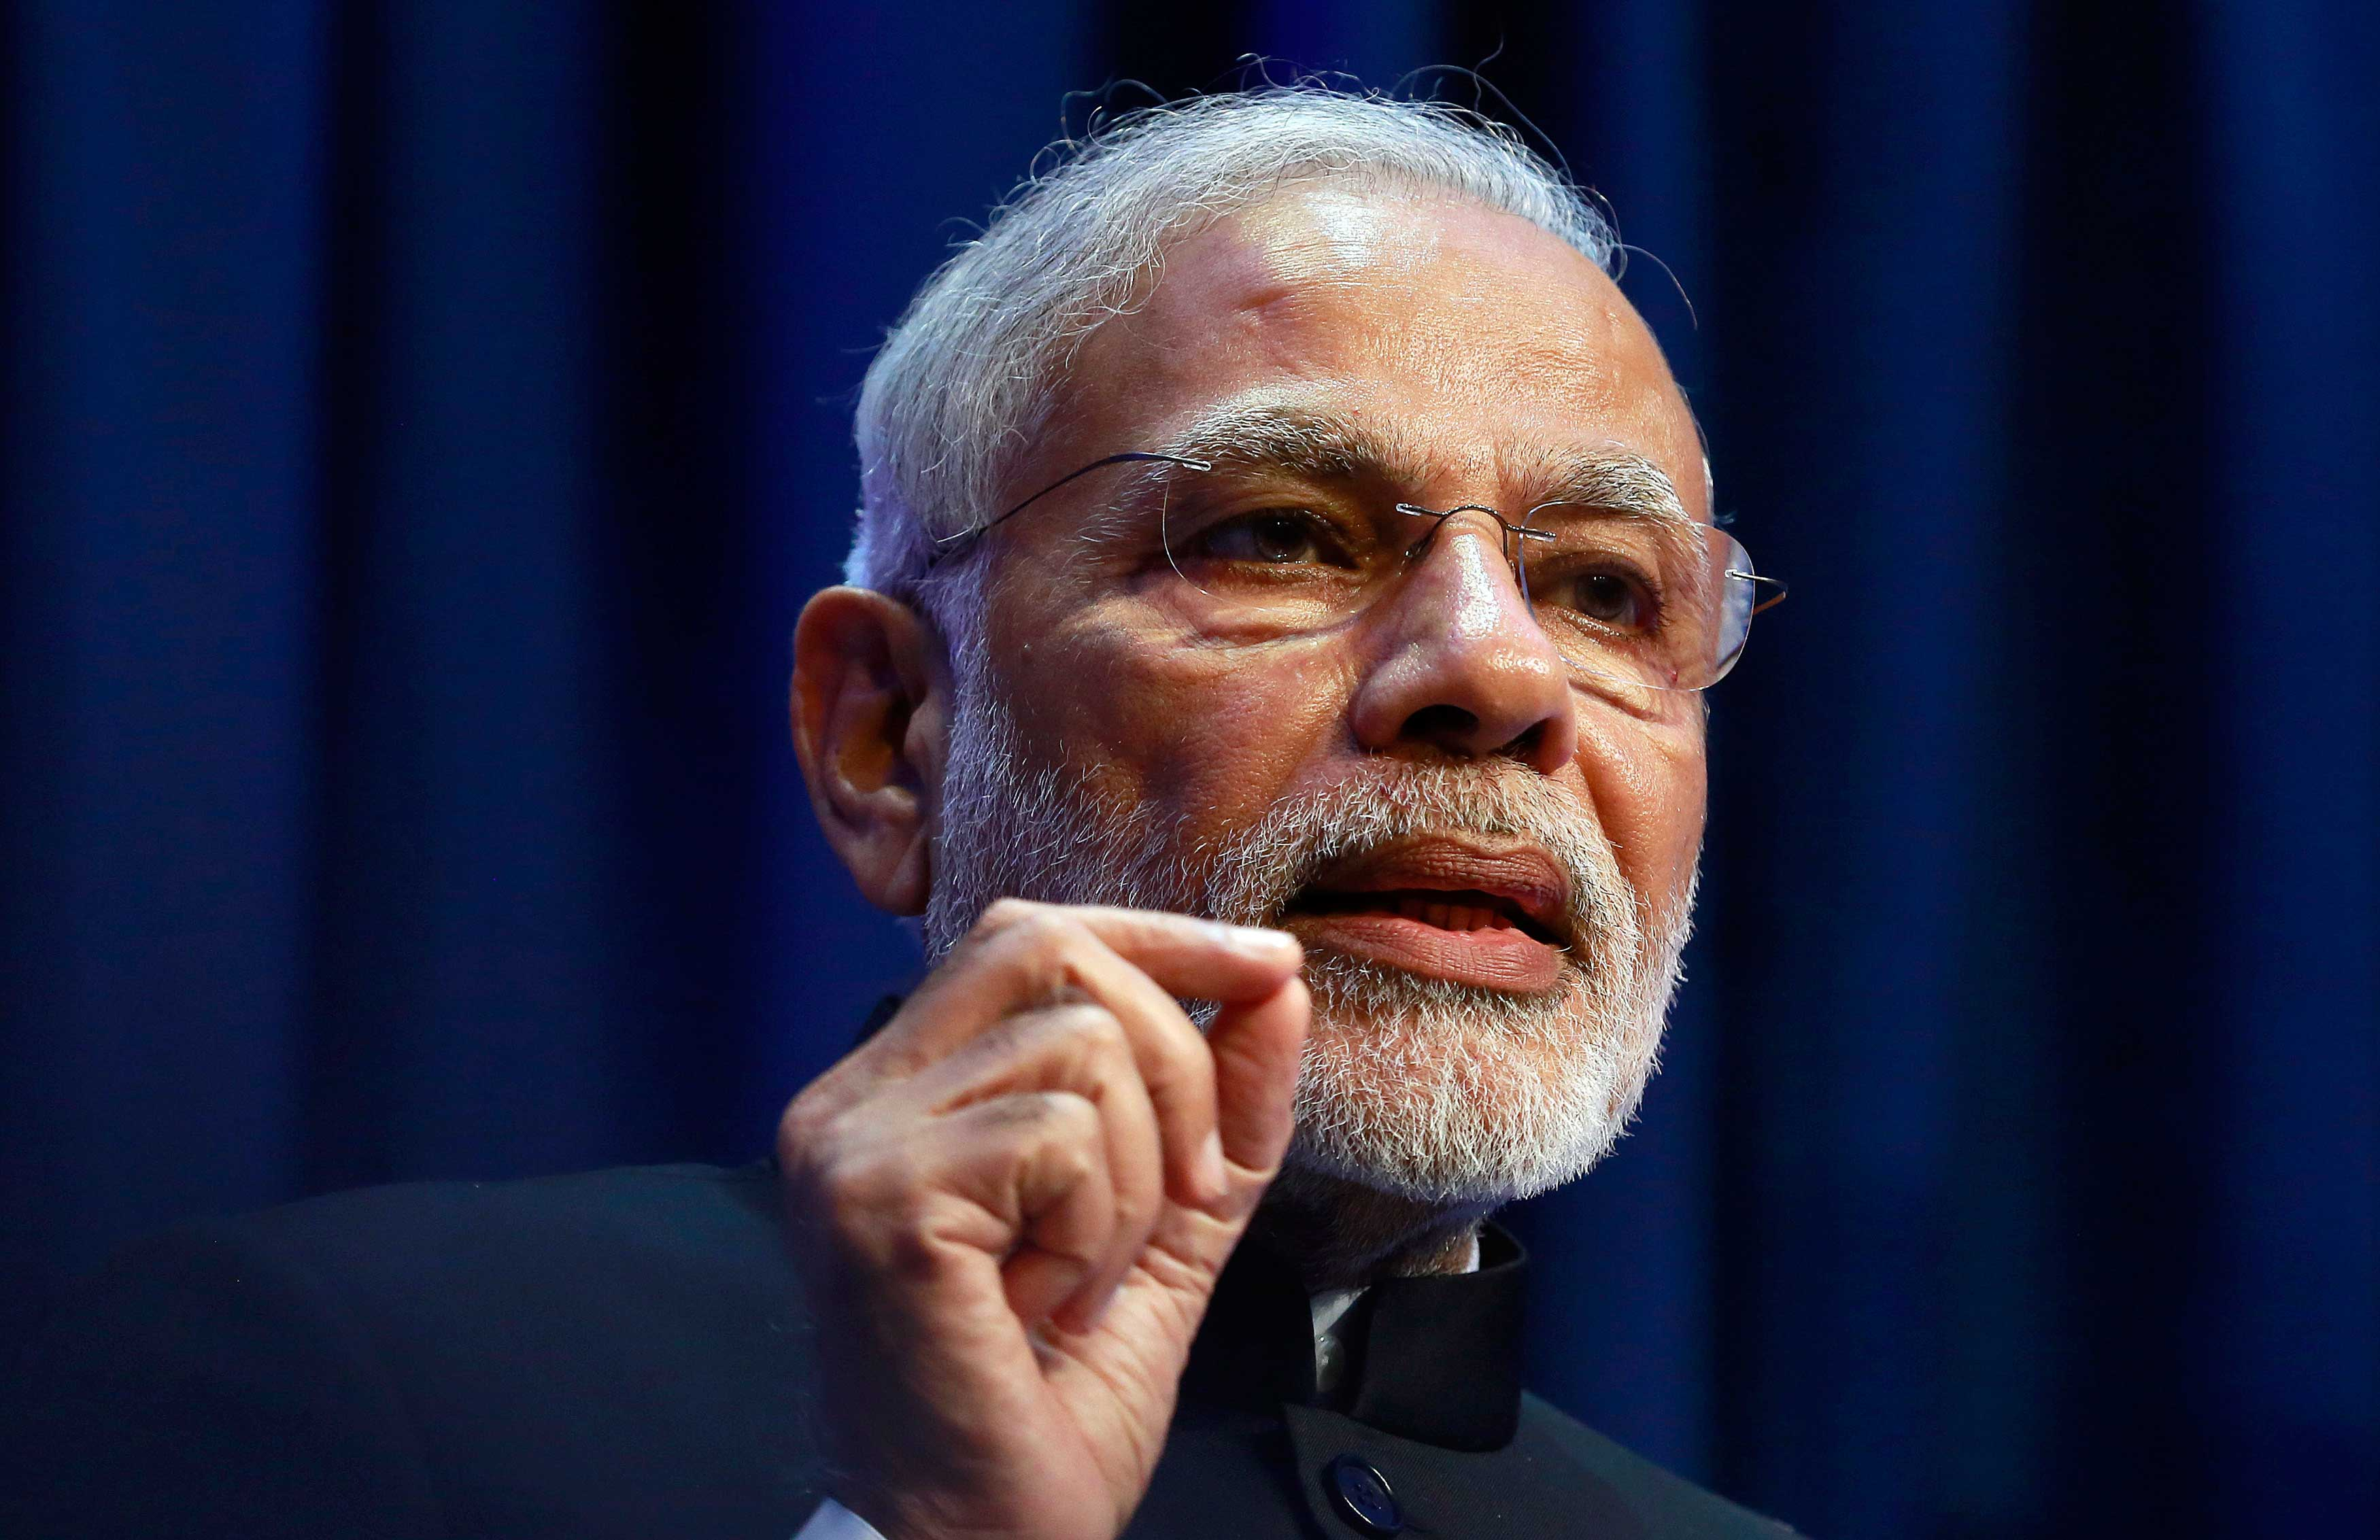 Governance reform is top priority: Modi to top CEOs